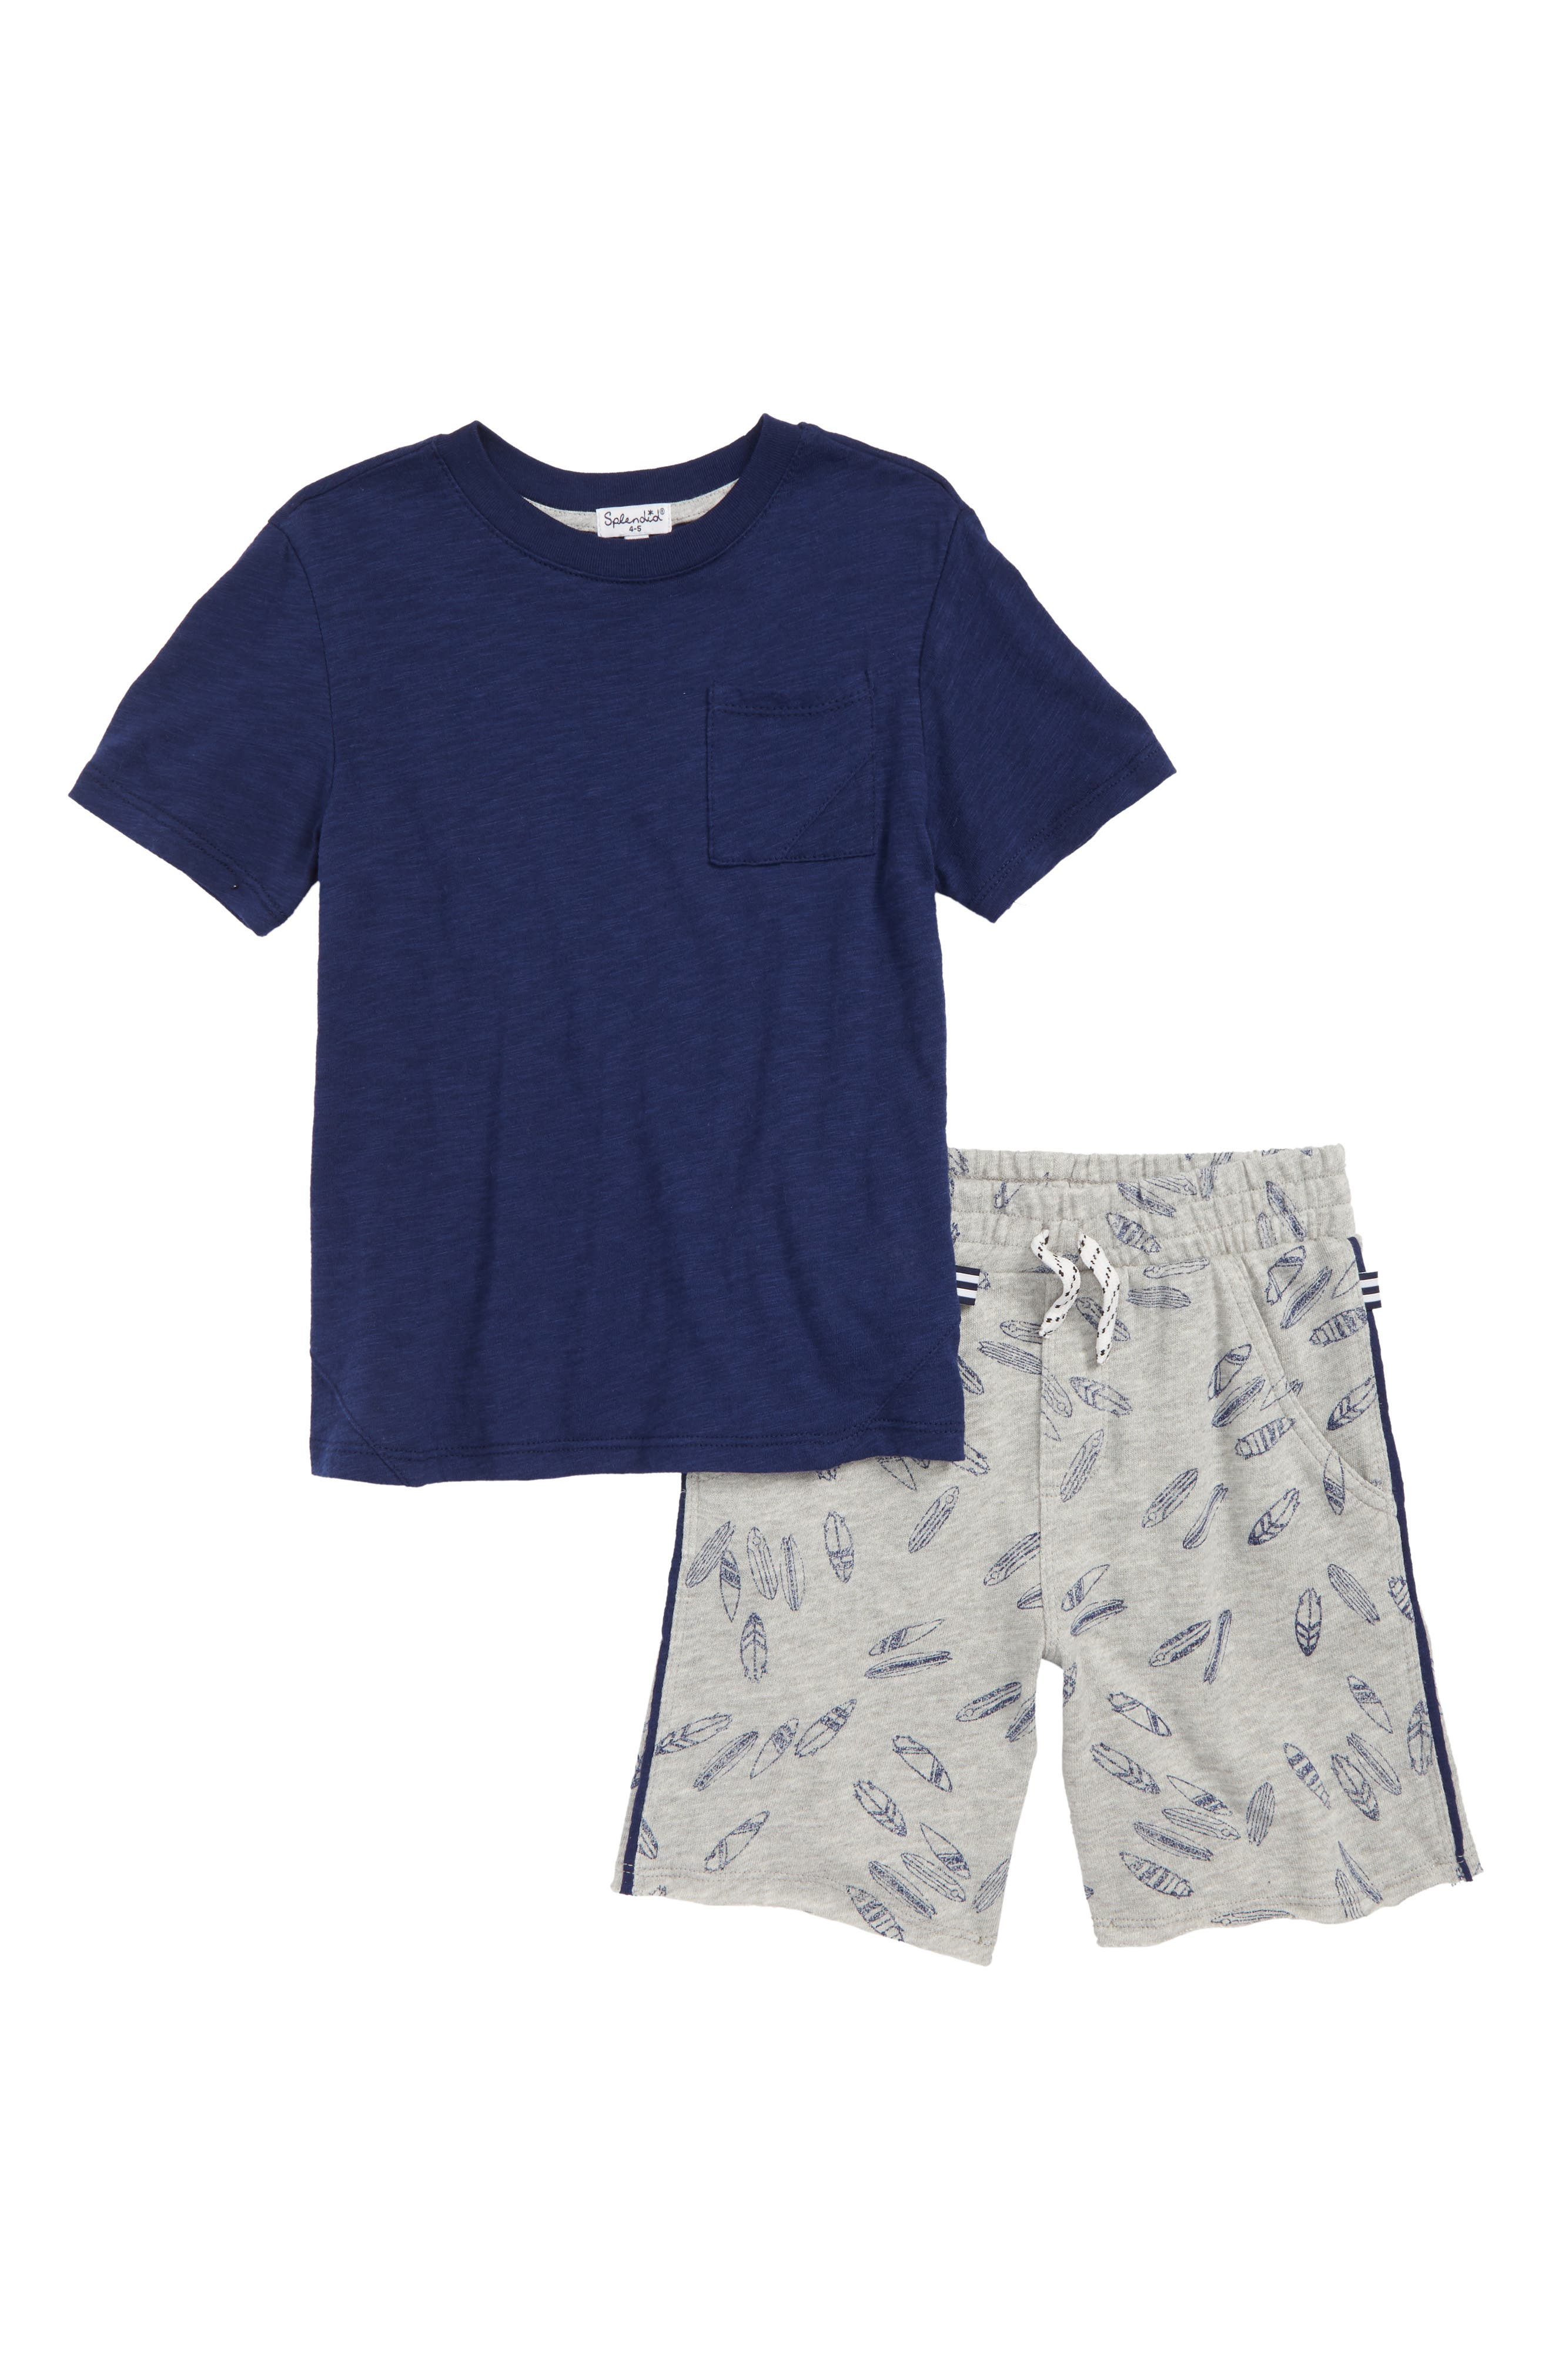 Splendid T-Shirt & Surfboard Graphic Shorts Set (Little Boys)